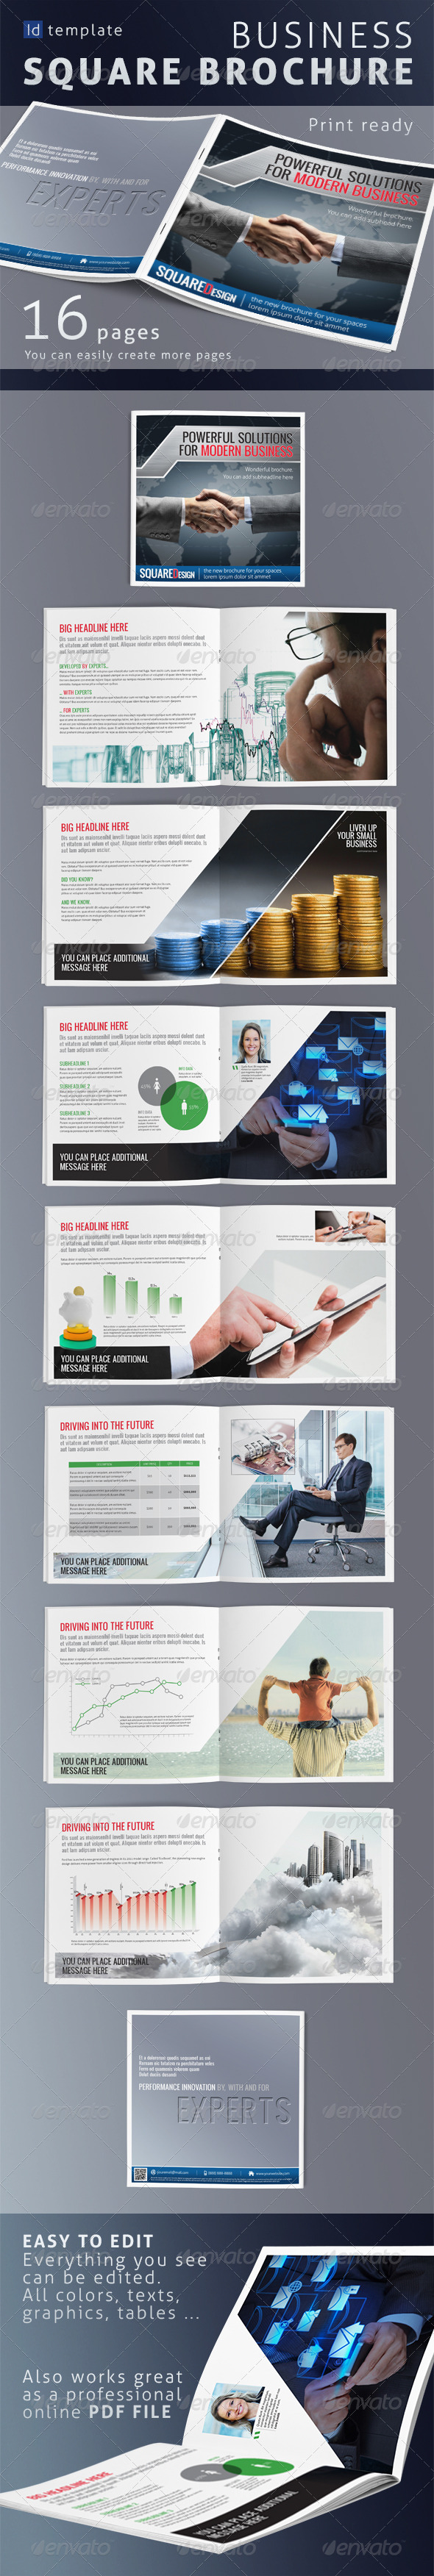 GraphicRiver Business Square Brochure 5003172